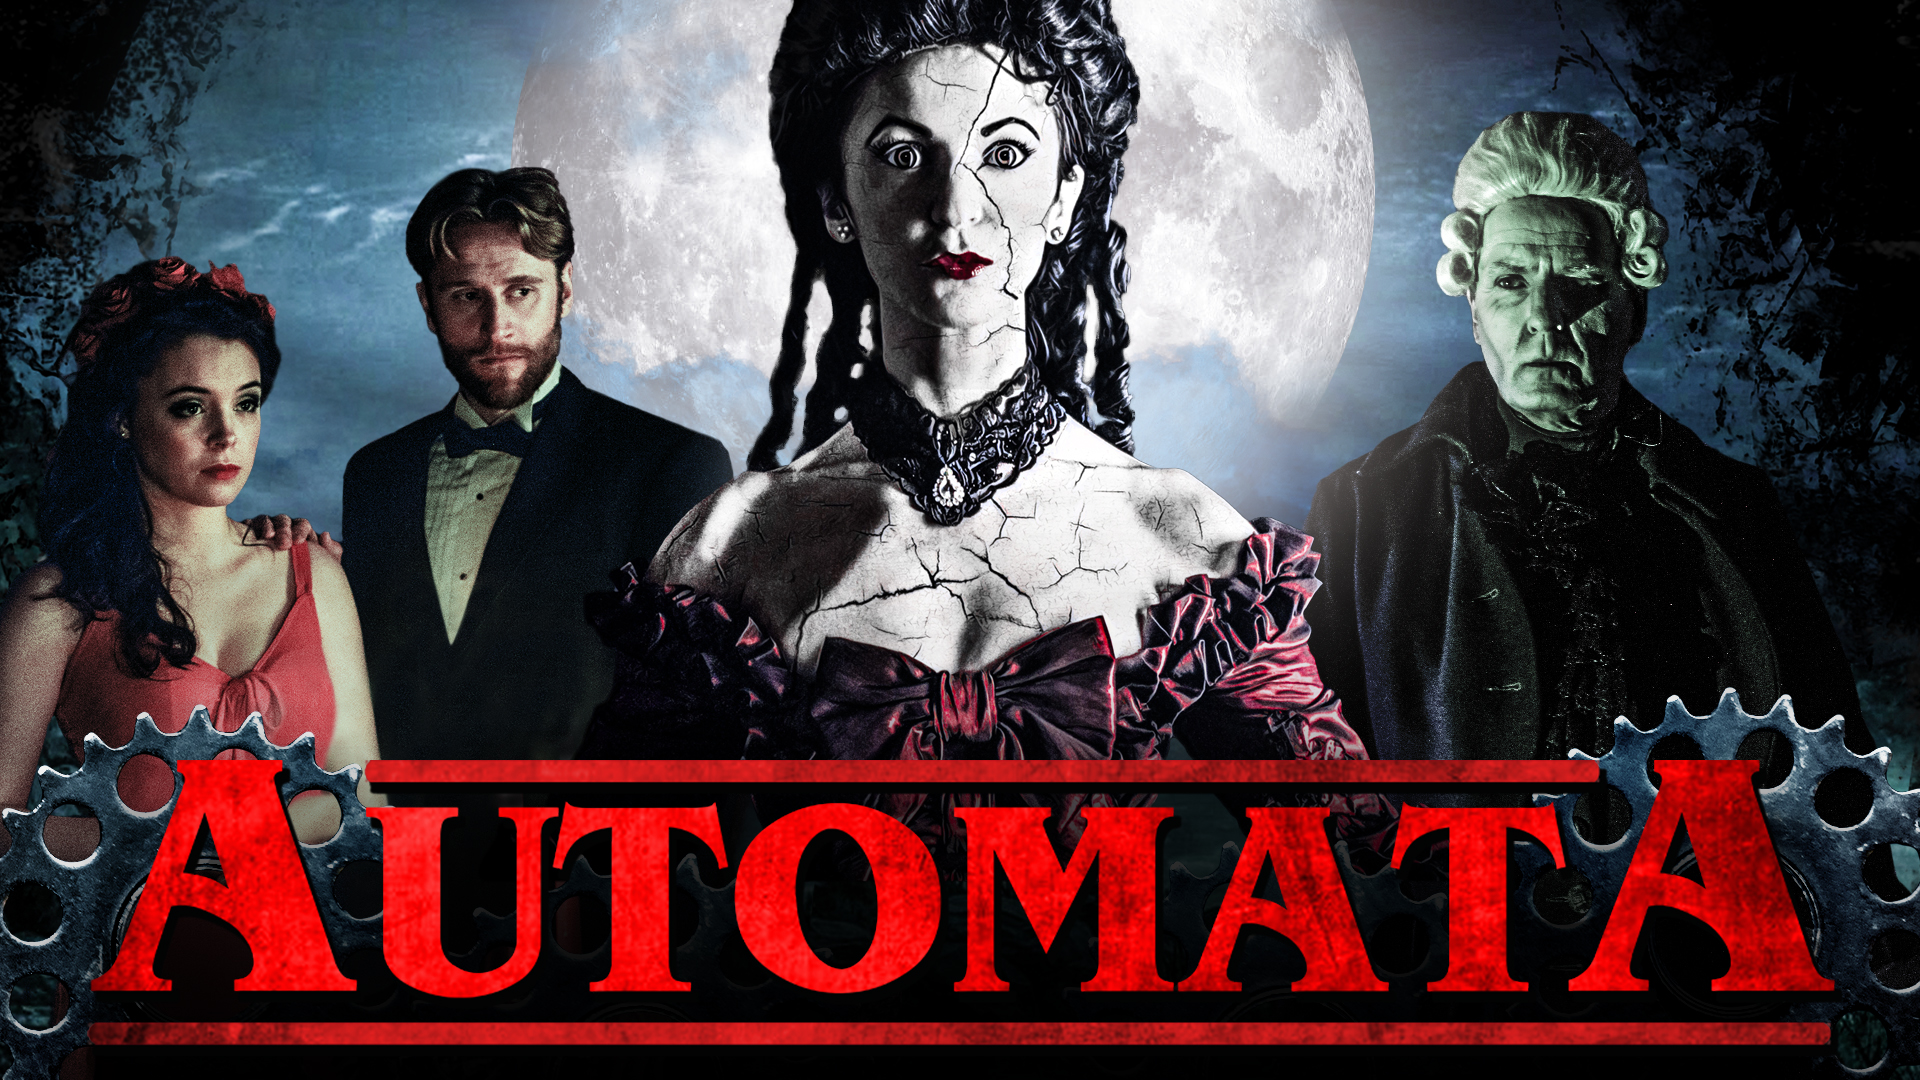 "PRESS RELEASE - Hex Studios Drops Epic First Trailer For Gothic Thriller 'Automata'Hot on the heels of their black and white Noir The Black Gloves, director Lawrie Brewster and writer Sarah Daly are back with another slice of Gothic horror.Automata, the fifth feature from the duo, is a lavish affair with a vibrant colour palette that harks back to the giallos of Argento and Bava. The film tells the story of an antiques expert sent to authenticate a three-hundred-year-old clockwork doll with a notorious history, the 'Infernal Princess'. He soon comes under its corrupting influence, and, along with his stepdaughter Rose, finds himself the target of dark forces beyond his control...The film stars Hex Studios' regulars Jamie Scott Gordon (The Black Gloves, Bonejangles) and Alexandra Nicole Hulme (Lord Of Tears, The Black Gloves), alongside Erich Redman (The Danish Girl, Woman In Gold), Jonathan Hansler (The Devil's Business) and rising star Victoria Lucie (Dartmoor Killing).According to director Lawrie Brewster, ""Automata is a wild, Gothic thrill-ride inspired by the decadence of Ken Russell's Gothic, as well as the sensual expressionism of Argento's Suspiria and Bava's Black Sabbath. It's by far the most ambitious film we've produced, with a truly epic story that switches between the 1700s and the present day to reveal the truth behind the curse of the 'Infernal Princess'.""Writer Sarah Daly alludes to the film's edgy themes; ""The film explores how someone's idea of love can be perverted by experience, and how that corruption can echo through the ages. It goes to some very dark places, basically!""The filmmakers have just launched a Kickstarter campaign offering pre-orders of the film, plush toys of their now infamous Owlman, credits, and other goodies to fund the post-production of the film.Check it out here: http://kck.st/2JygnzEAutomata is an international co-production between Hex Studios and long-time partners Dark Dunes Productions, in association with Needle's Eye Productions, and Executive Producers Nick Ford, Greg Orsi and Richard Pate. The film is set for release in December 2018."